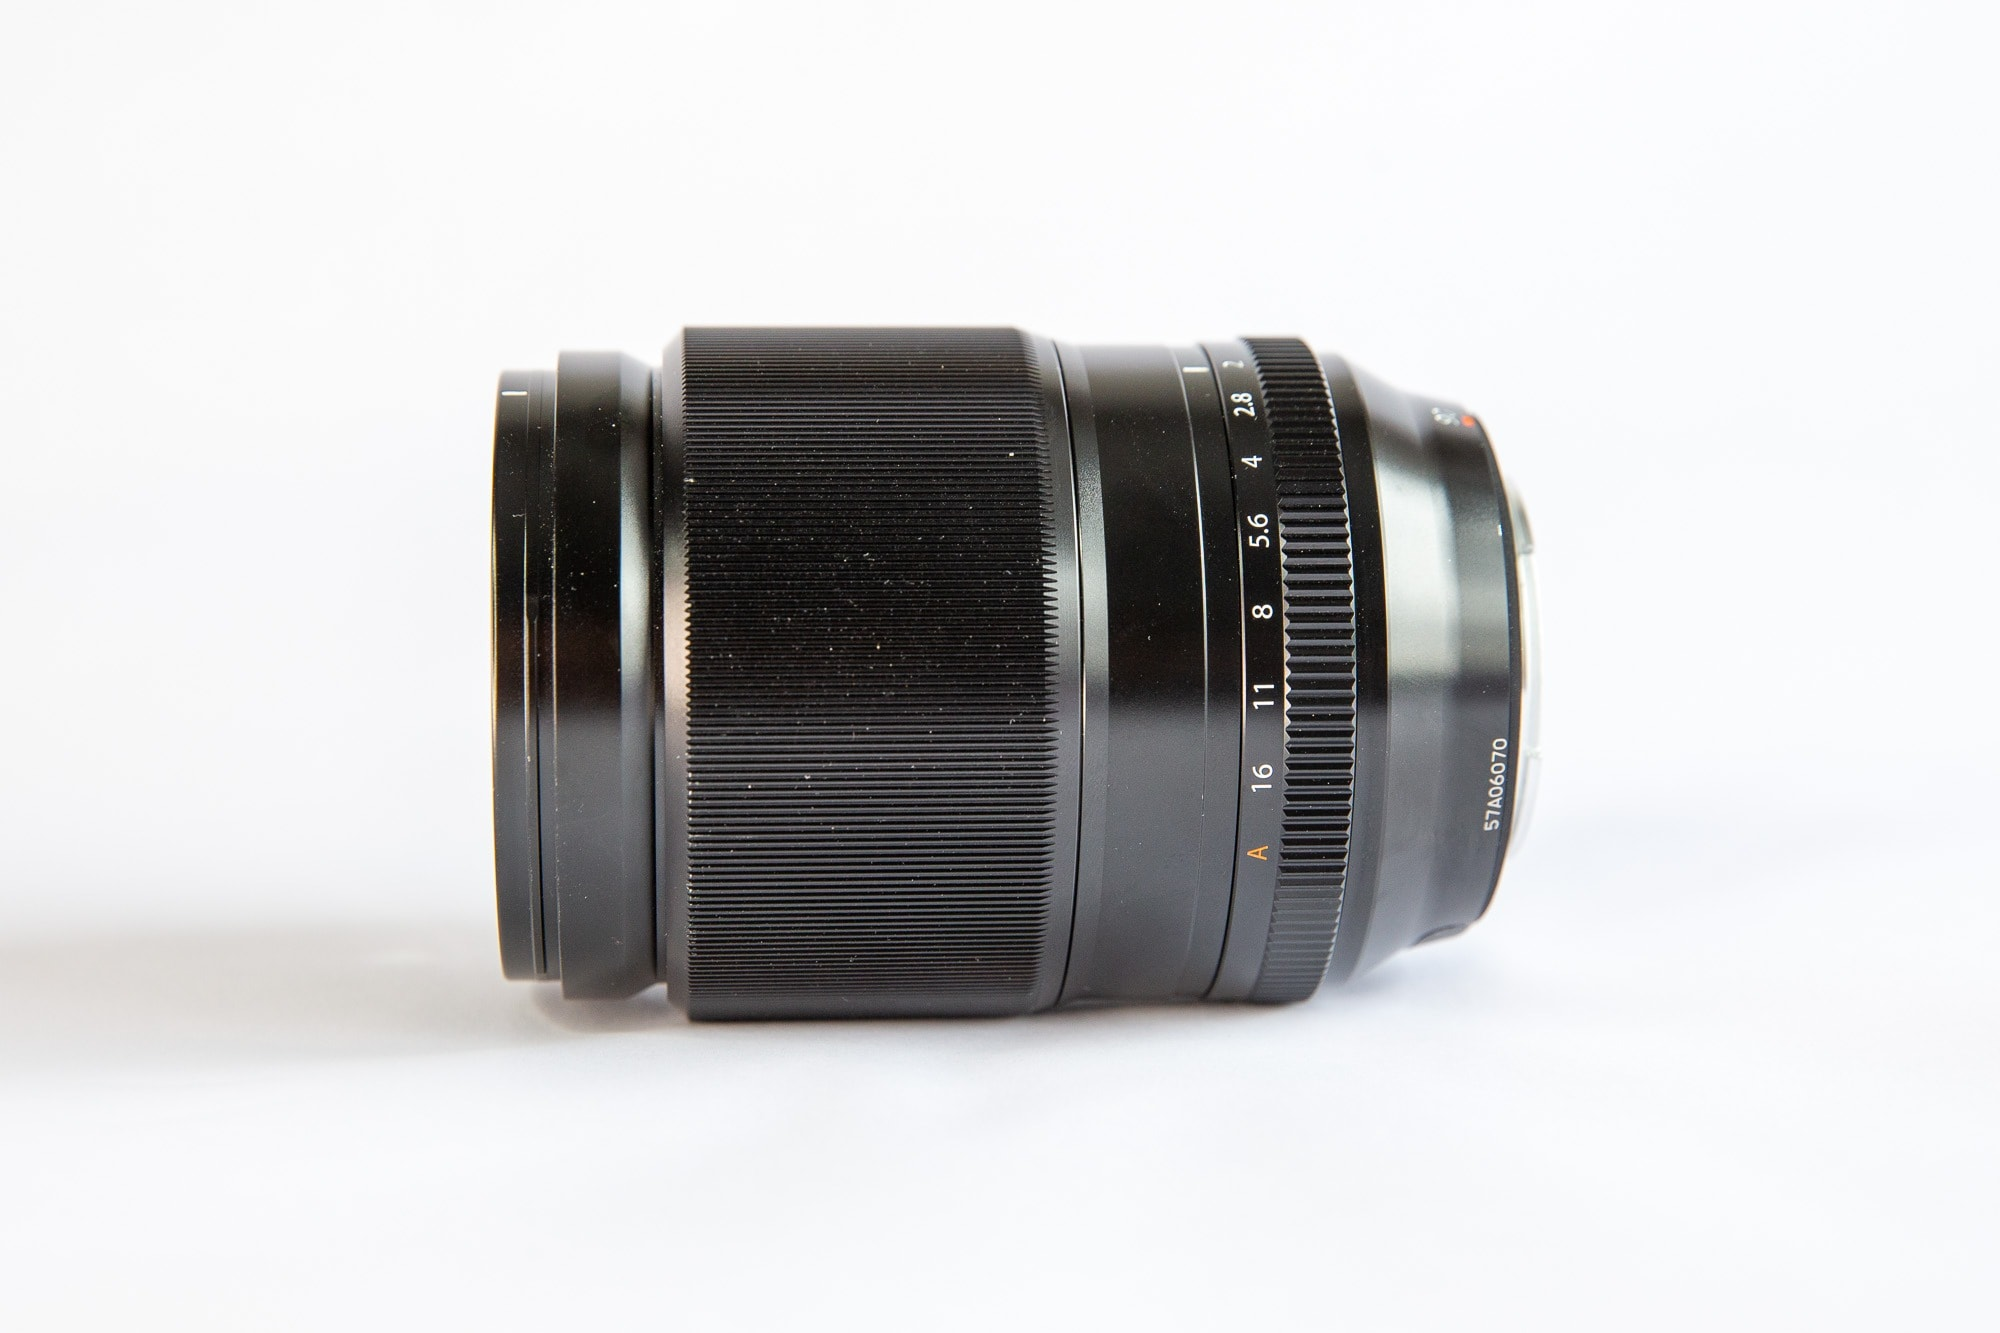 Fuji XF 90mm f2 Side View